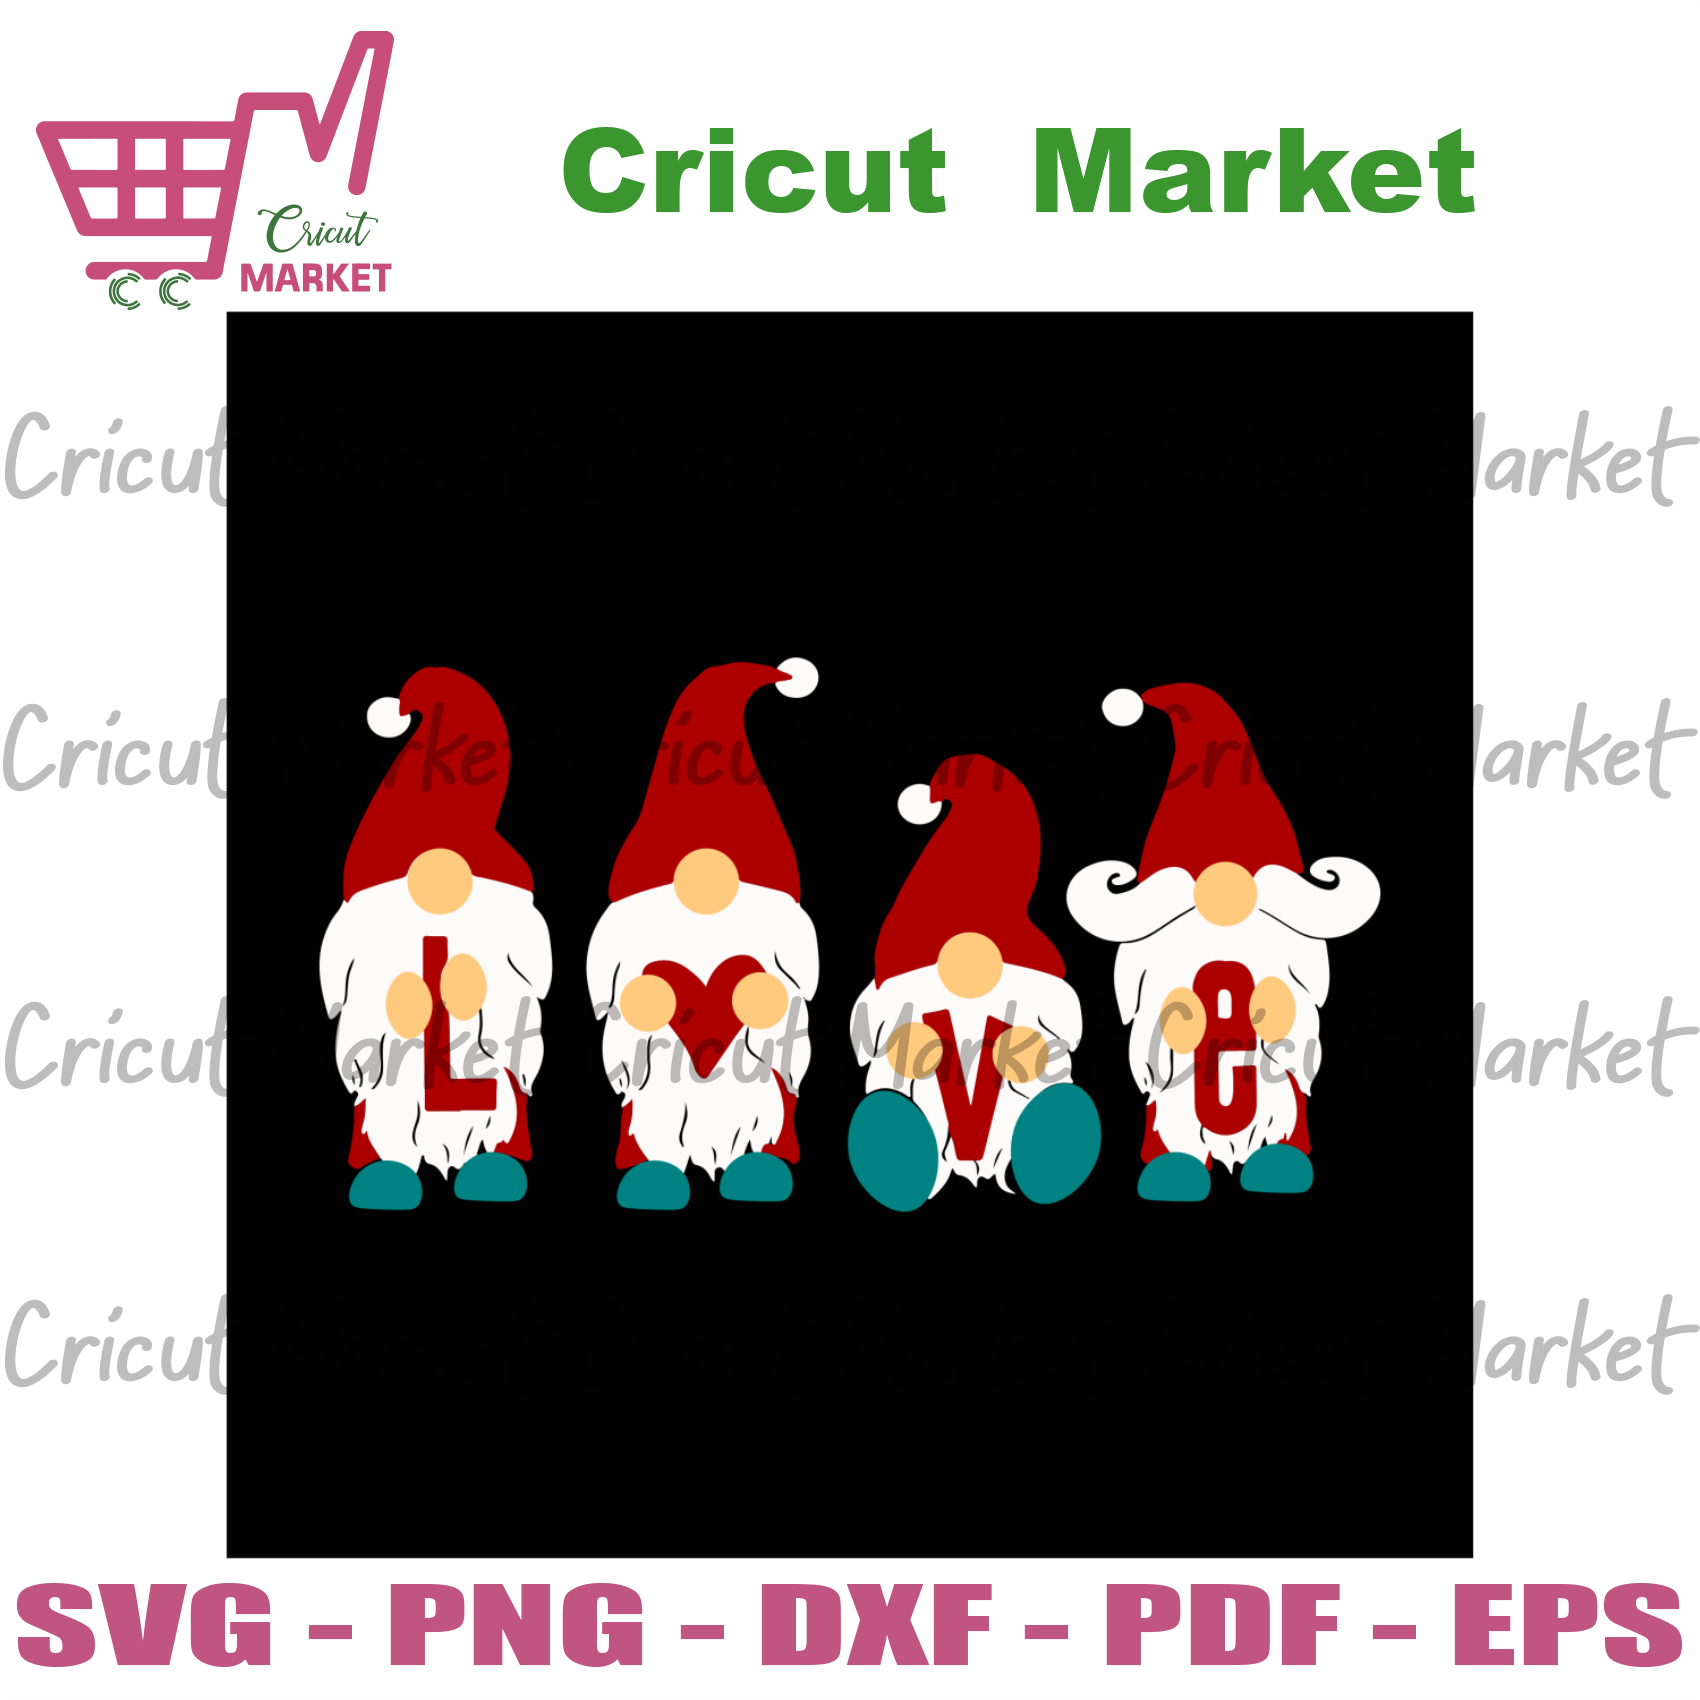 Love gnomes, christmas svg, gnomies svg, gnome svg, gnomies christmas, christmas gifts, merry christmas, christmas gifts, gnome squad svg, gnomy svg, gnome lovers, gnomy gift - Cricut Market